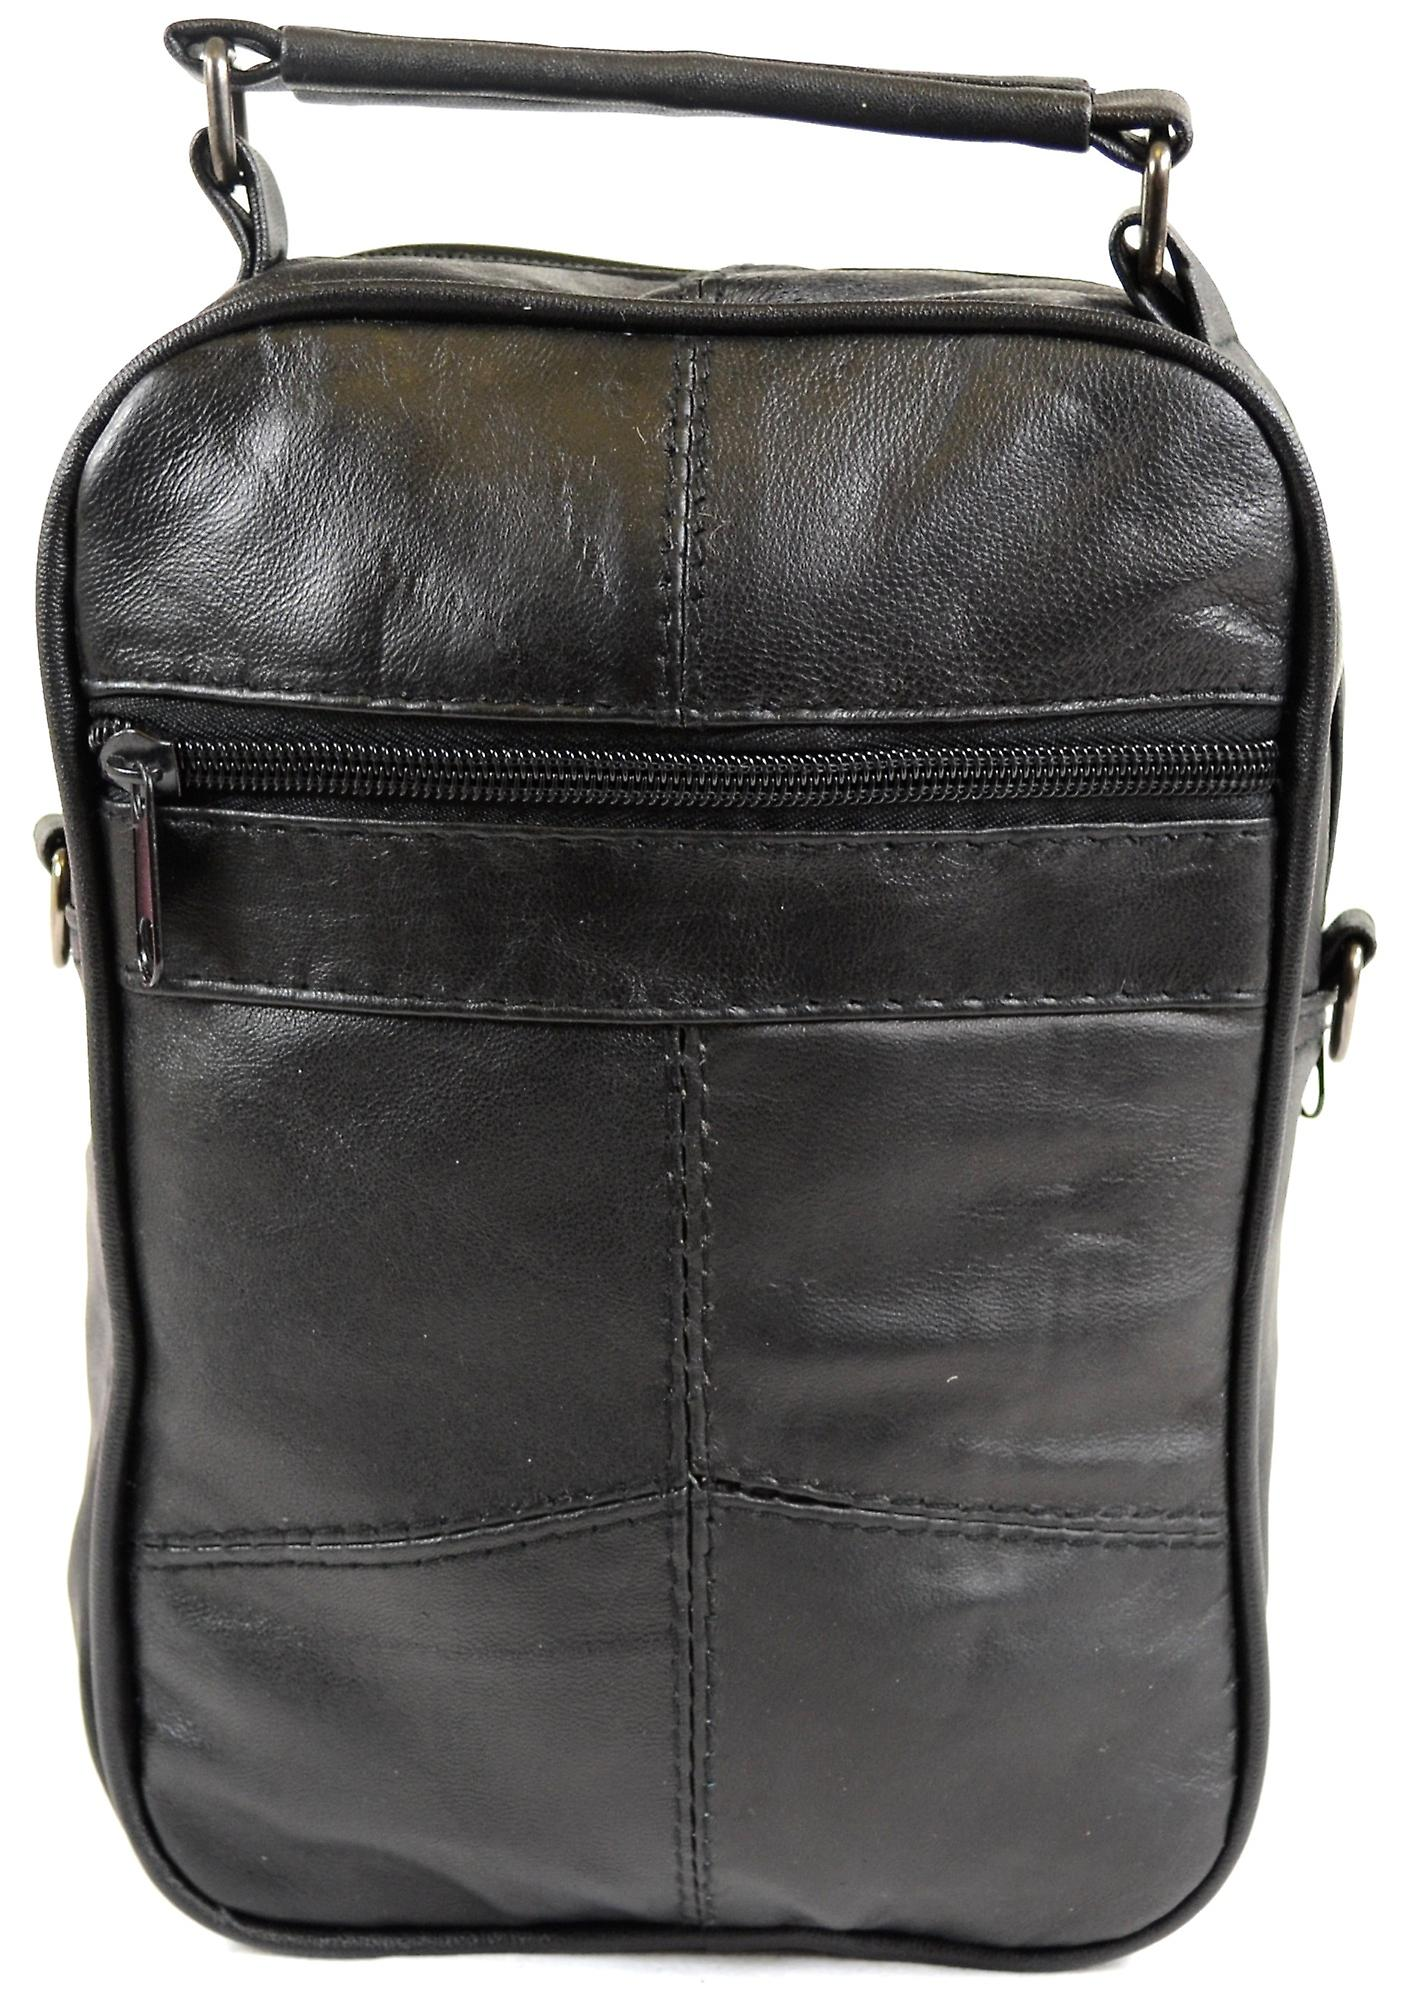 Mens / Ladies Super Soft Nappa Leather Shoulder / Carry Travel / Flight Bag with Multiple Pockets